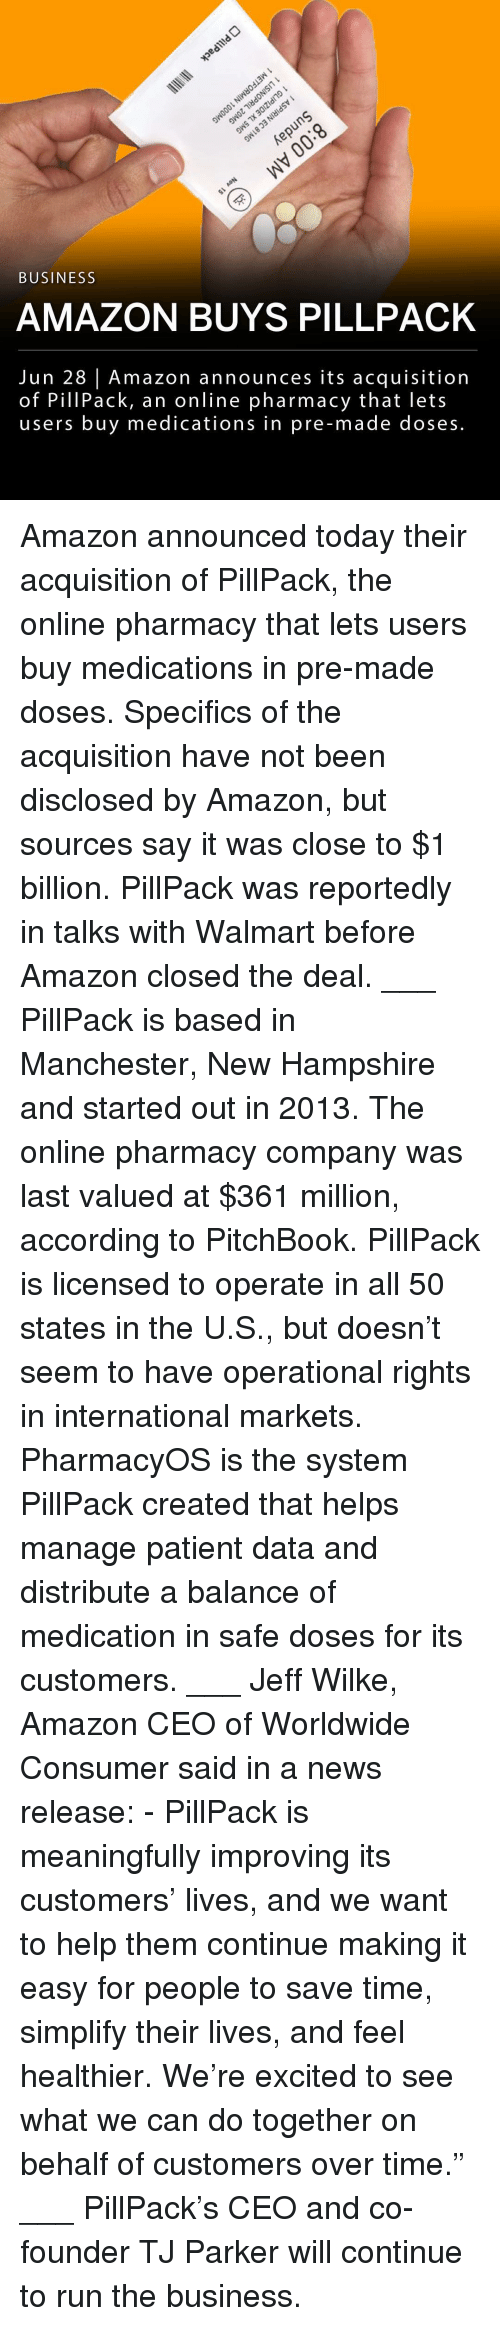 "50 states: 3  BUSINESS  AMAZON BUYS PILLPACK  Jun 28 | Amazon announces its acquisition  of PillPack, an online pharmacy that lets  users buy medications in pre-made doses. Amazon announced today their acquisition of PillPack, the online pharmacy that lets users buy medications in pre-made doses. Specifics of the acquisition have not been disclosed by Amazon, but sources say it was close to $1 billion. PillPack was reportedly in talks with Walmart before Amazon closed the deal. ___ PillPack is based in Manchester, New Hampshire and started out in 2013. The online pharmacy company was last valued at $361 million, according to PitchBook. PillPack is licensed to operate in all 50 states in the U.S., but doesn't seem to have operational rights in international markets. PharmacyOS is the system PillPack created that helps manage patient data and distribute a balance of medication in safe doses for its customers. ___ Jeff Wilke, Amazon CEO of Worldwide Consumer said in a news release: - PillPack is meaningfully improving its customers' lives, and we want to help them continue making it easy for people to save time, simplify their lives, and feel healthier. We're excited to see what we can do together on behalf of customers over time."" ___ PillPack's CEO and co-founder TJ Parker will continue to run the business."